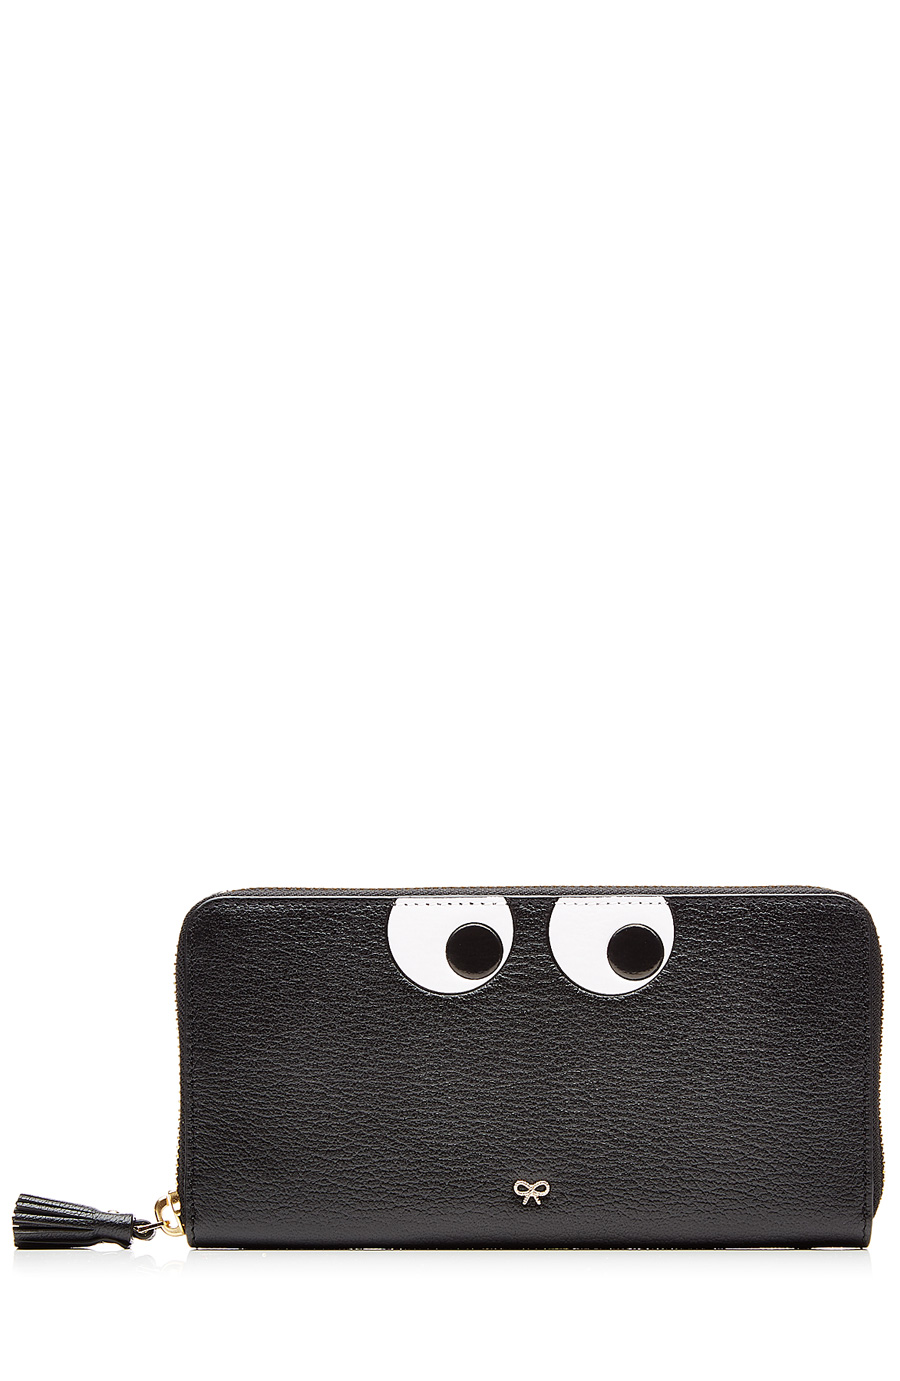 ANYA HINDMARCH Eyes Embossed Leather Zip Around Wallet, Black